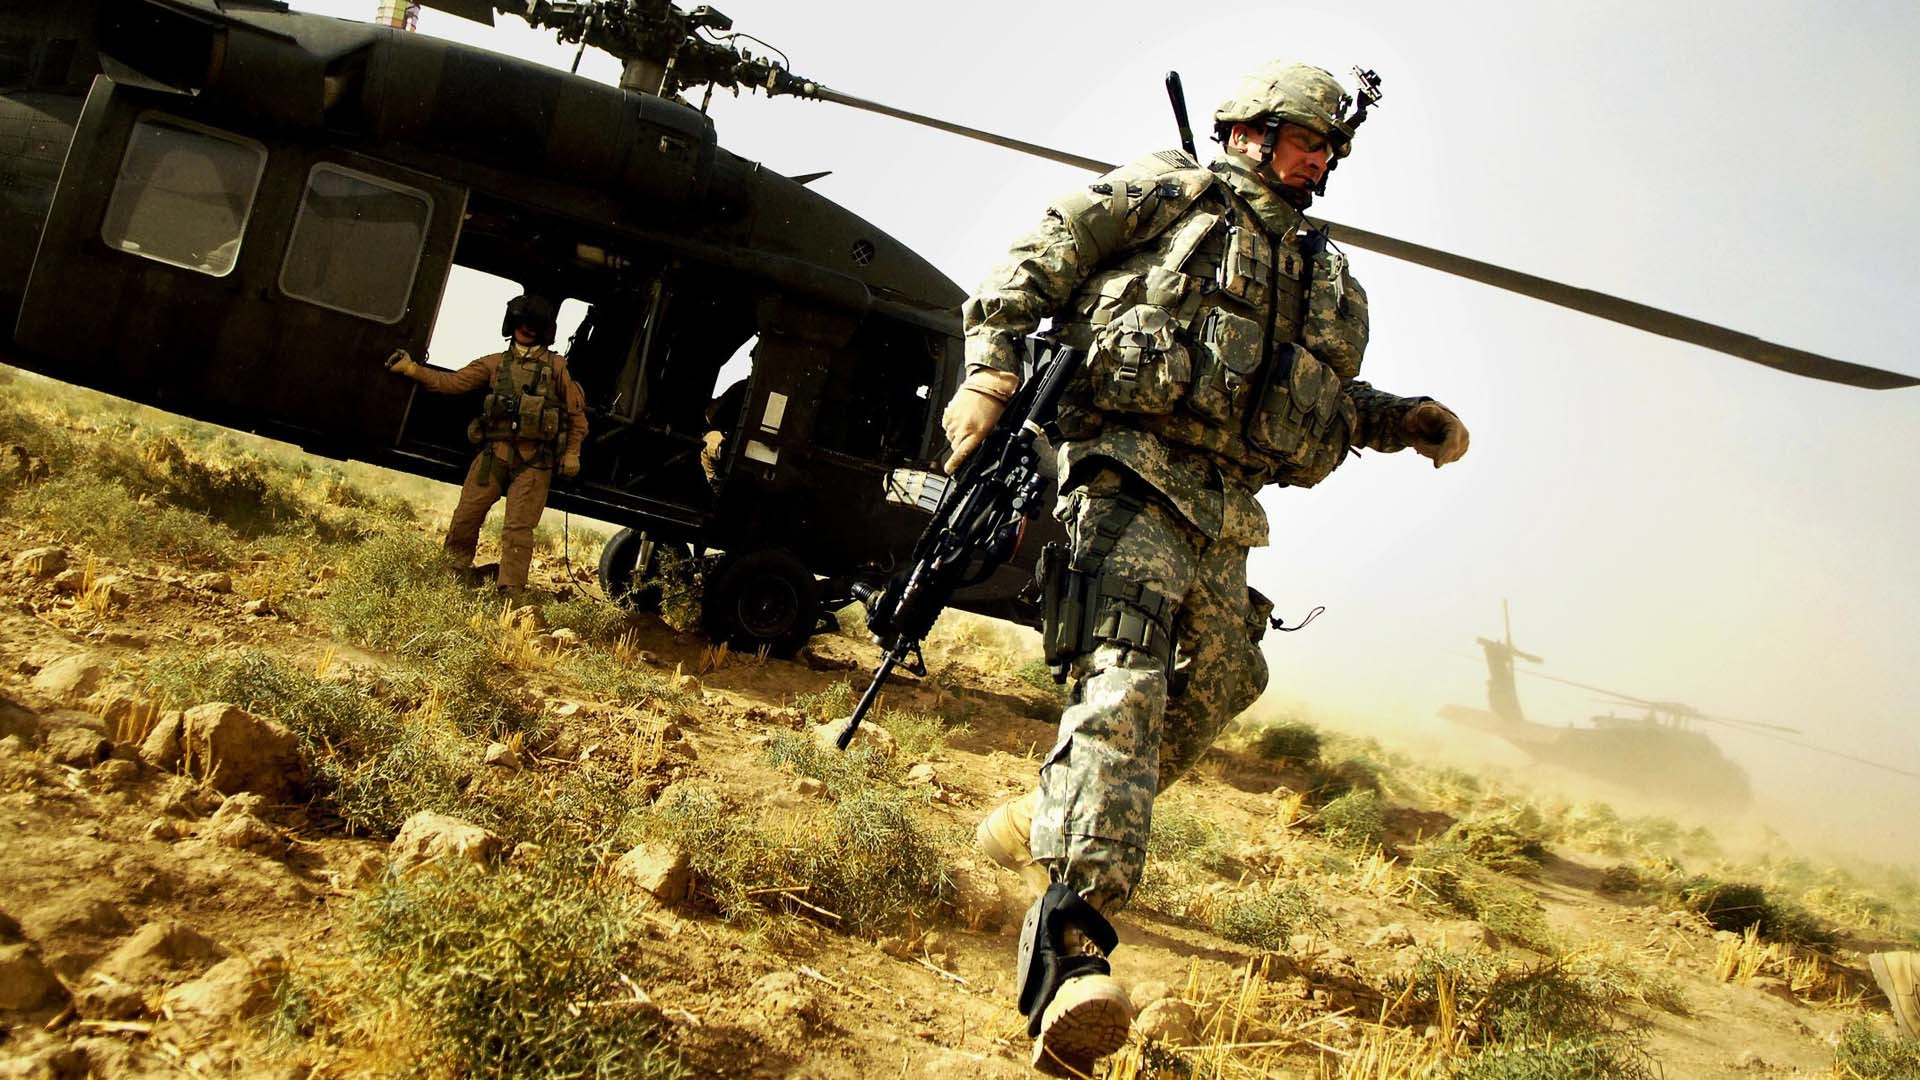 Res: 1920x1080, US Army Soldier Wallpaper  (315.56 Kb) Free Download